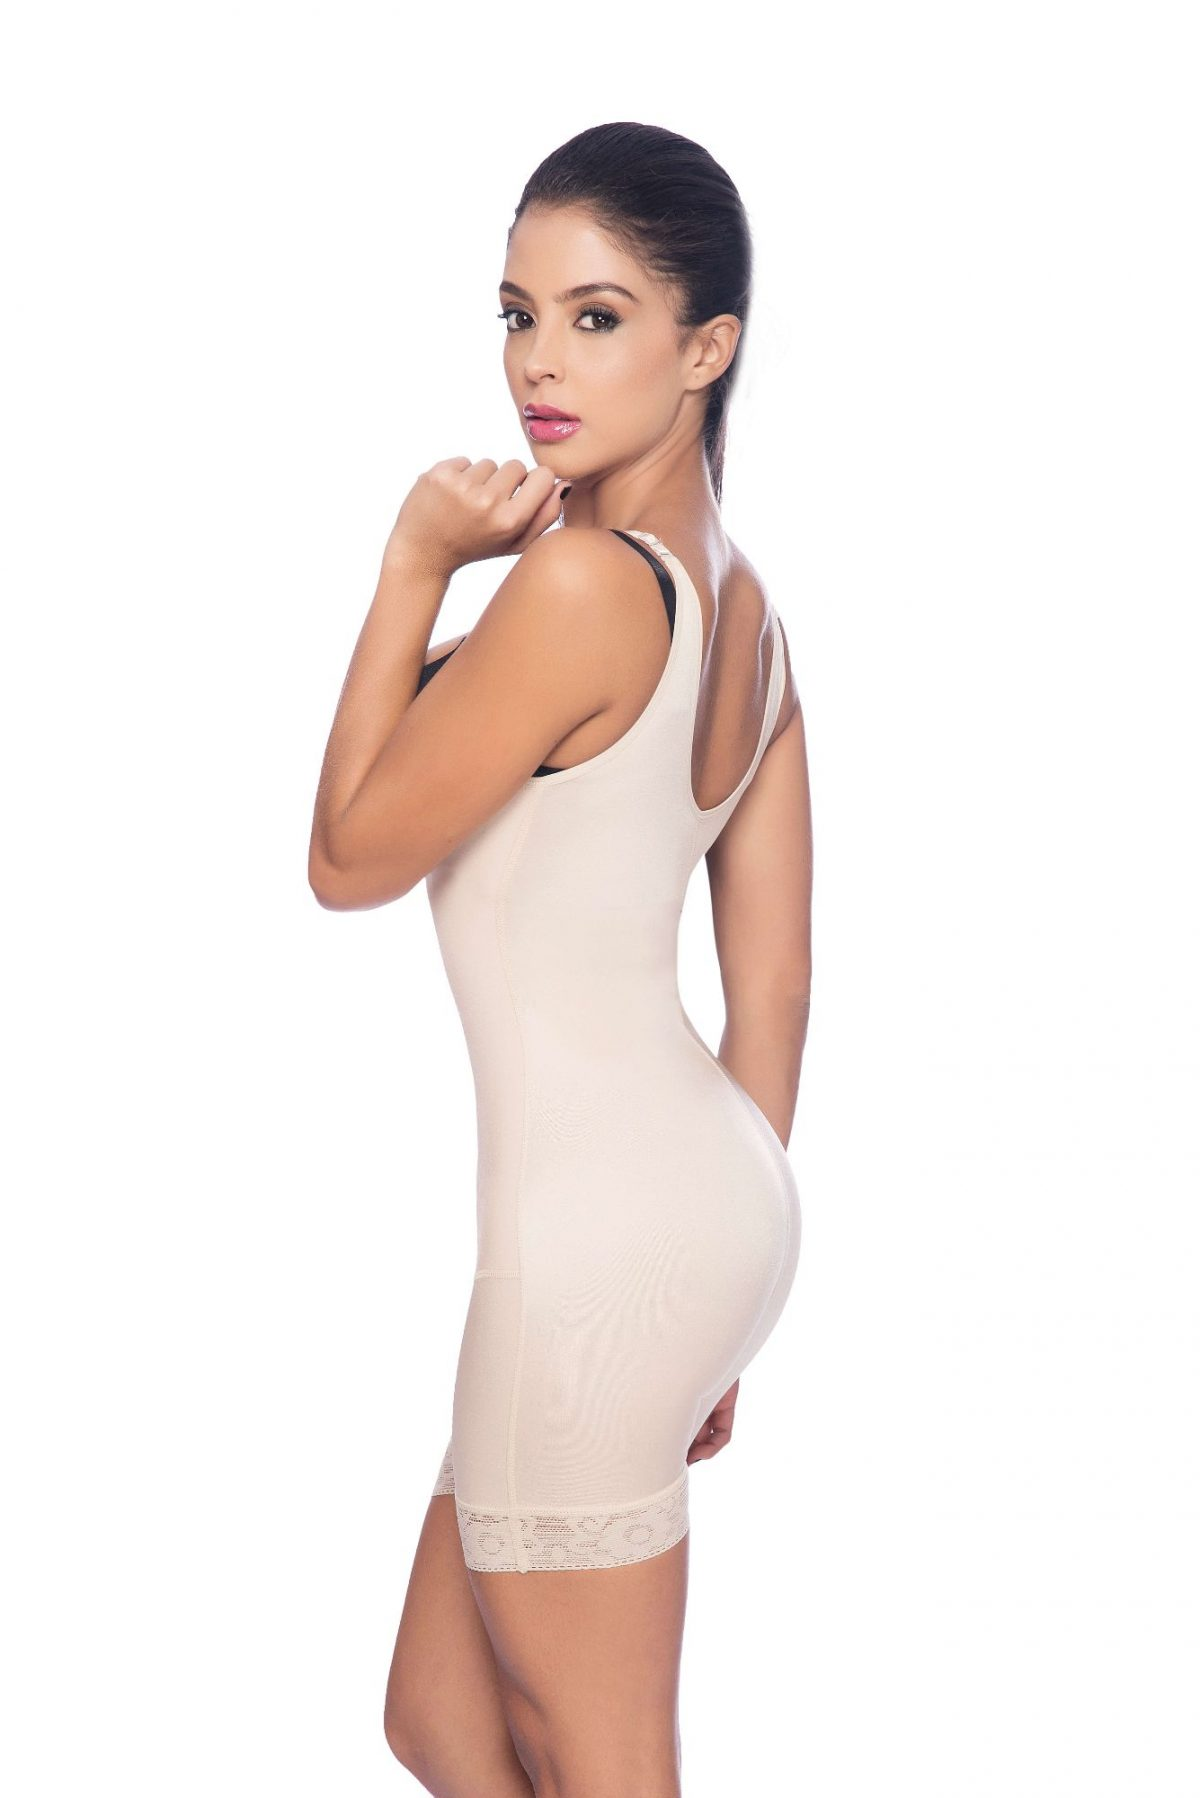 5cb102c85 Braless full body short body shaper with suspender straps - Contour ...